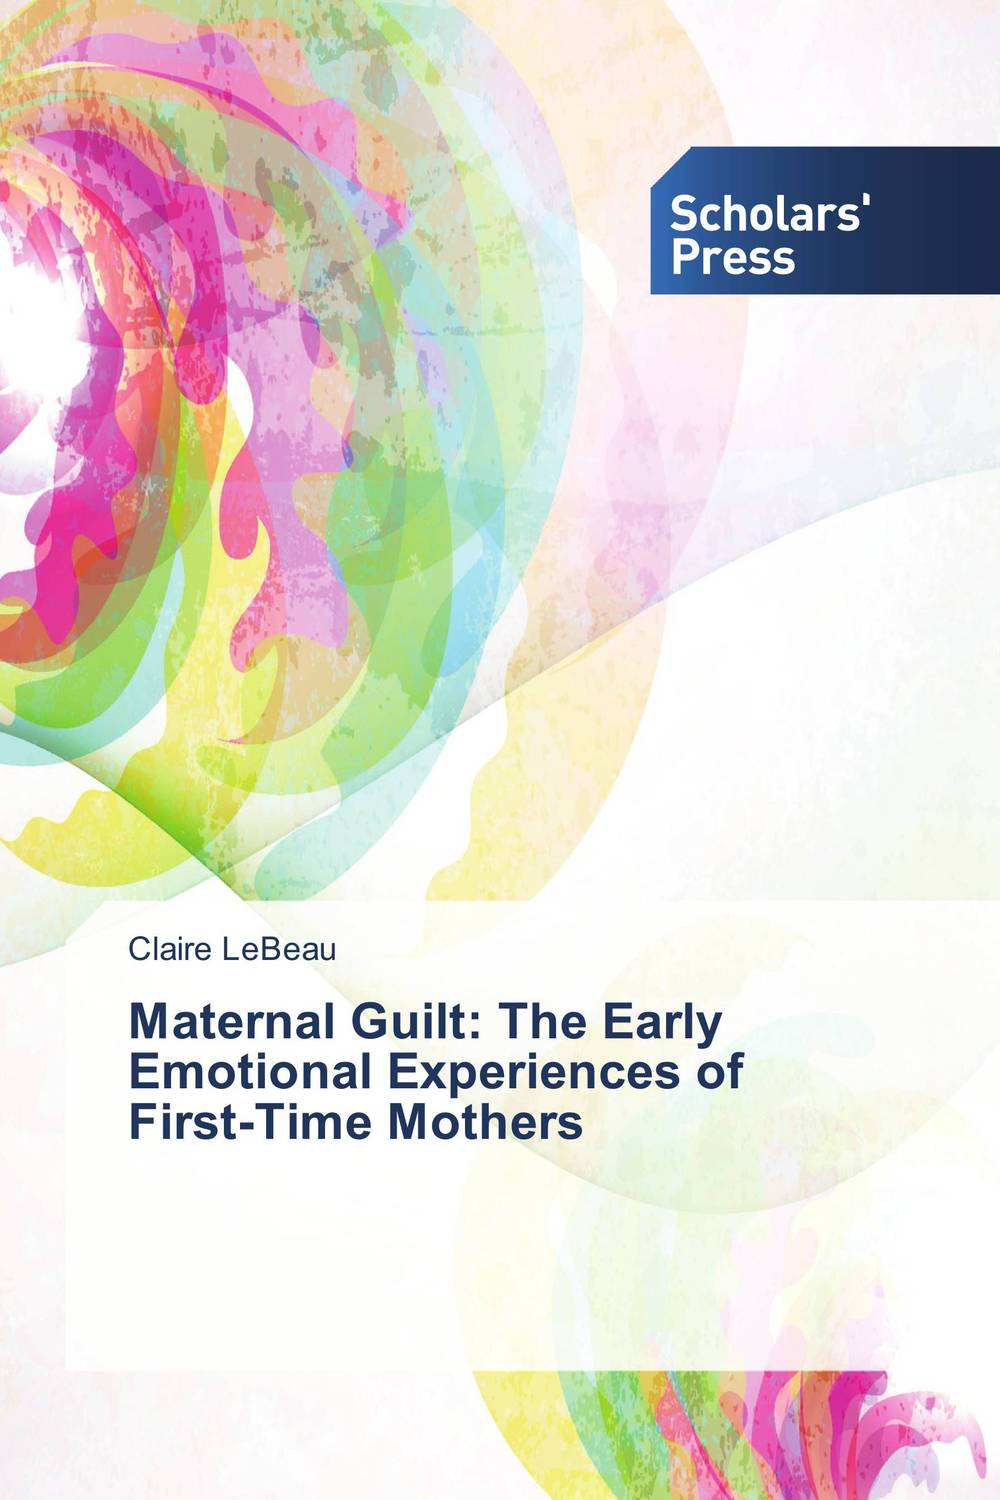 Maternal Guilt: The Early Emotional Experiences of First-Time Mothers breaching the guilt taboo